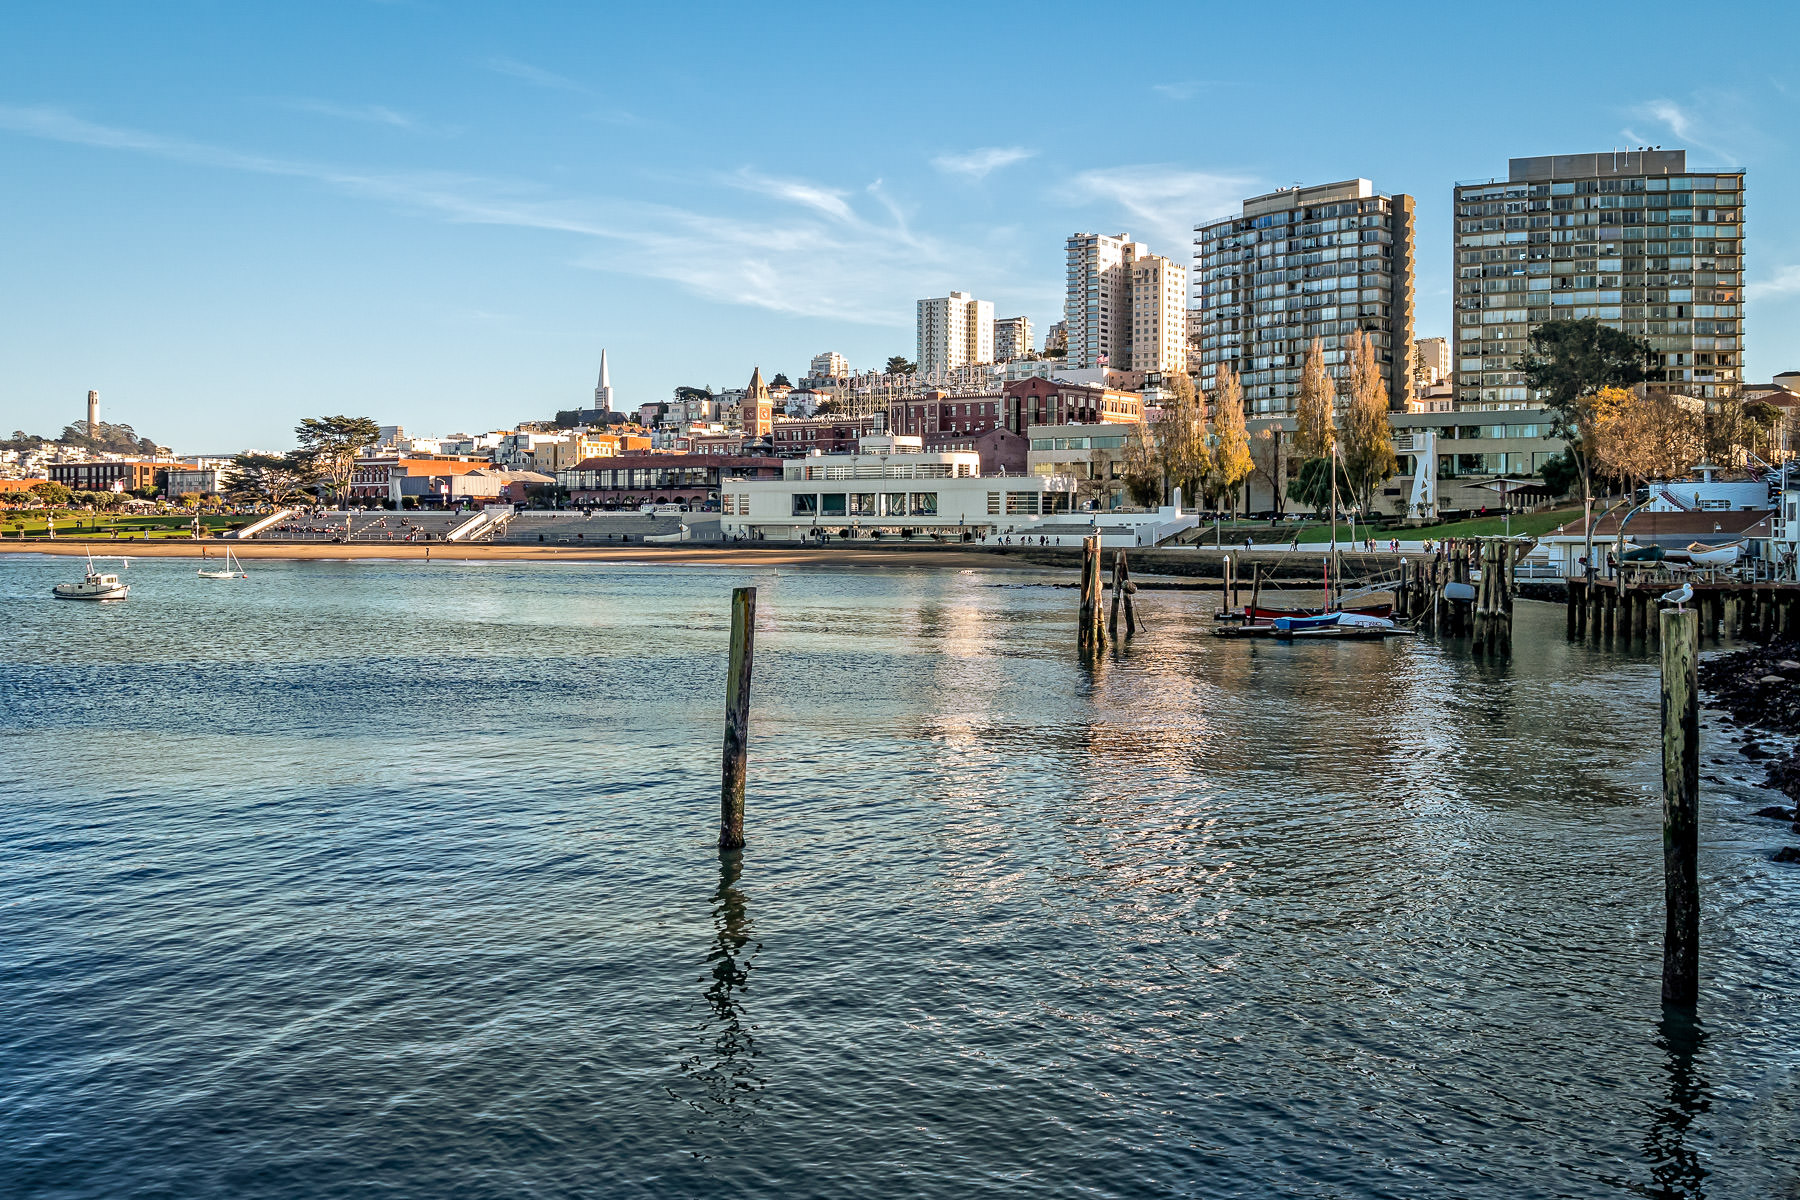 San Francisco landmarks, including Coit Tower, the Transamerica Pyramid and Ghirardelli Square rise beyond the city's historic Aquatic Park.